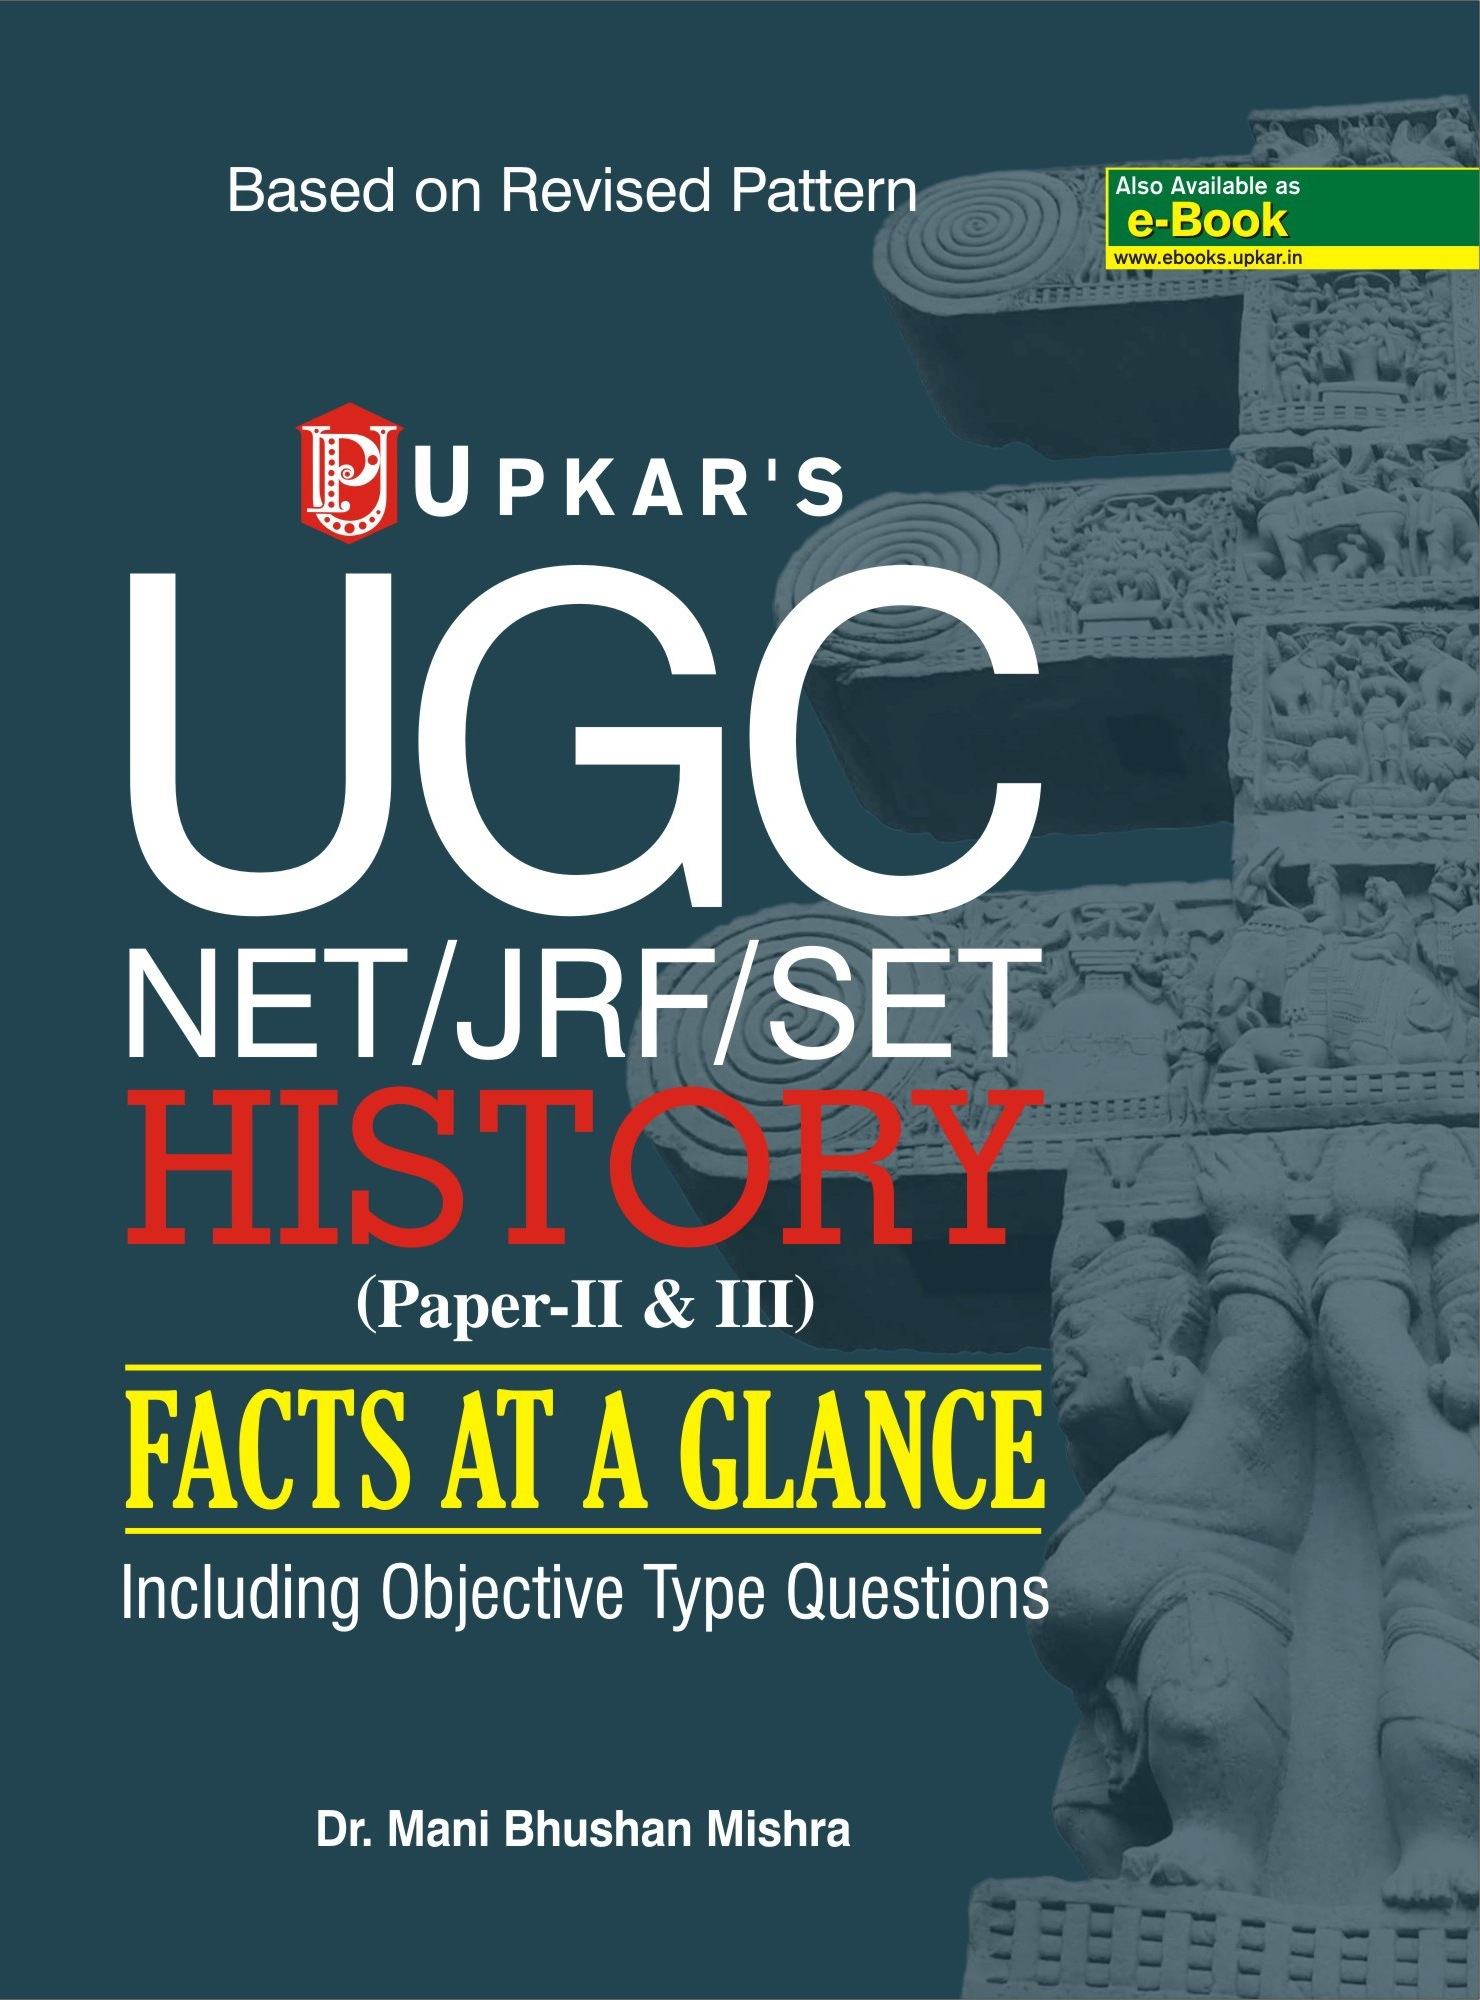 History Paper II and III Facts  At a Glance UGC NETJRF SET